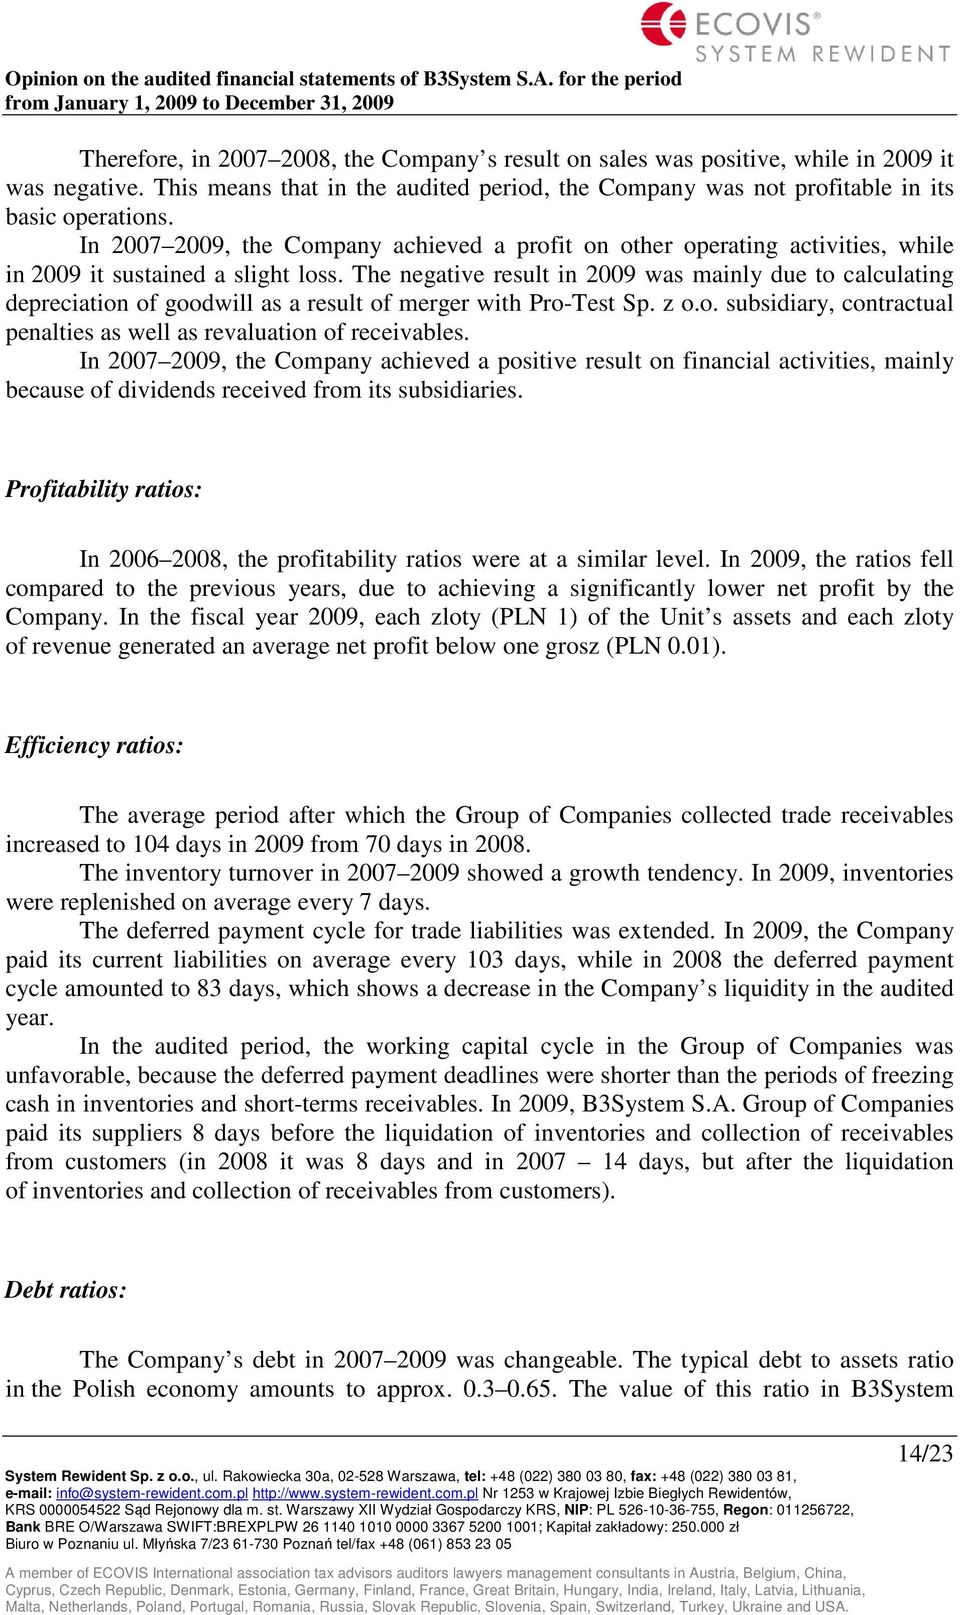 The negative result in 2009 was mainly due to calculating depreciation of goodwill as a result of merger with Pro-Test Sp. z o.o. subsidiary, contractual penalties as well as revaluation of receivables.